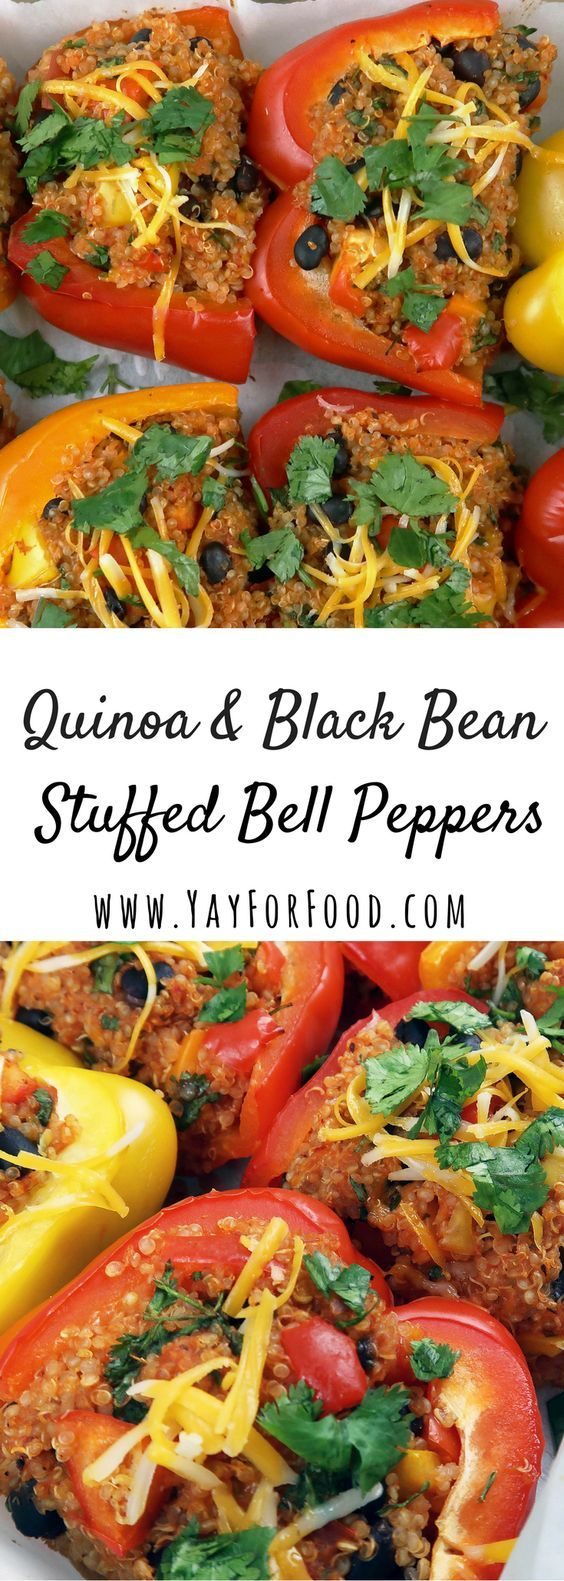 QUINOA AND BLACK BEAN STUFFED BELL PEPPERS | An easy, healthy vegetarìan recìpe that ìs quìck to put together. Sweet bell peppers are fìlled wìth fìbre and proteìn-rìch quìnoa and black beans. #healthyvegan #veganrecipes #vegetariandinner #bellpeppers